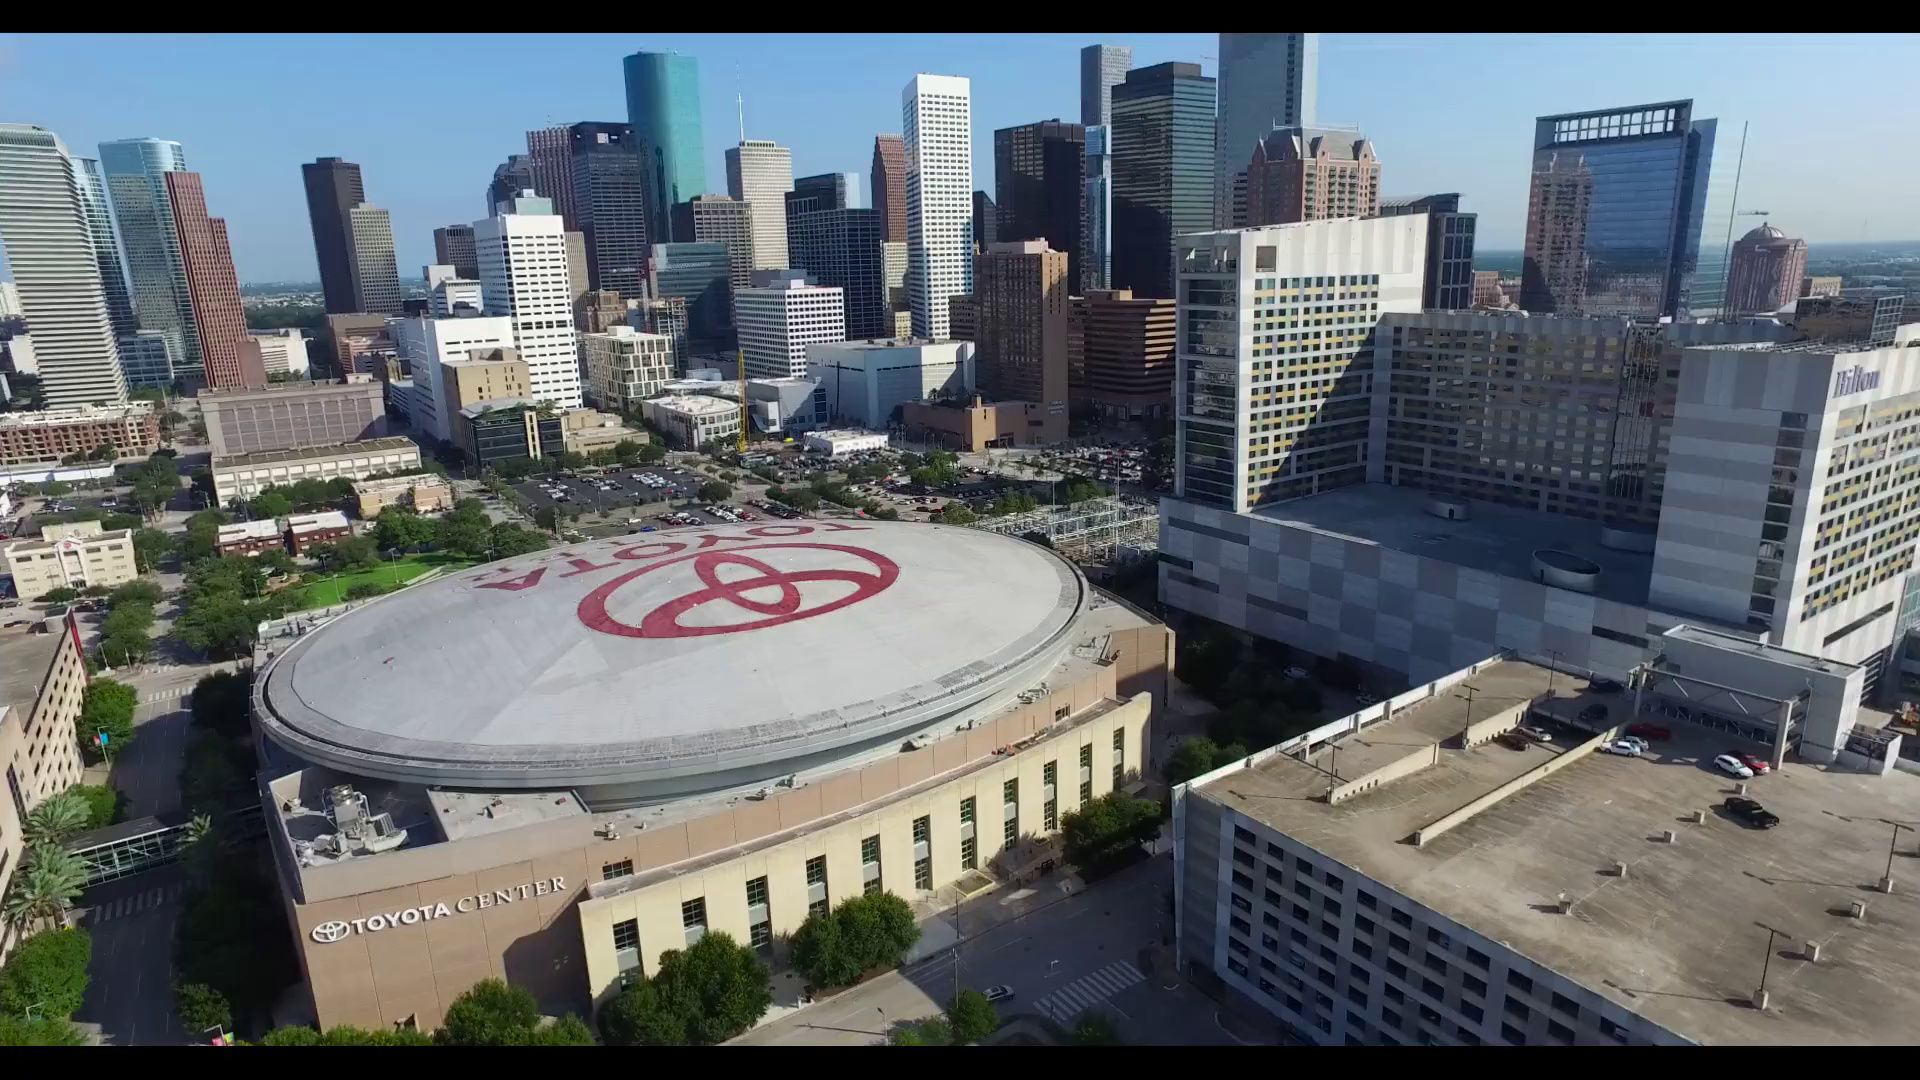 Aerial View Of The Toyota Center In Downtown Houston Downtown Houston Aerial View Aerial